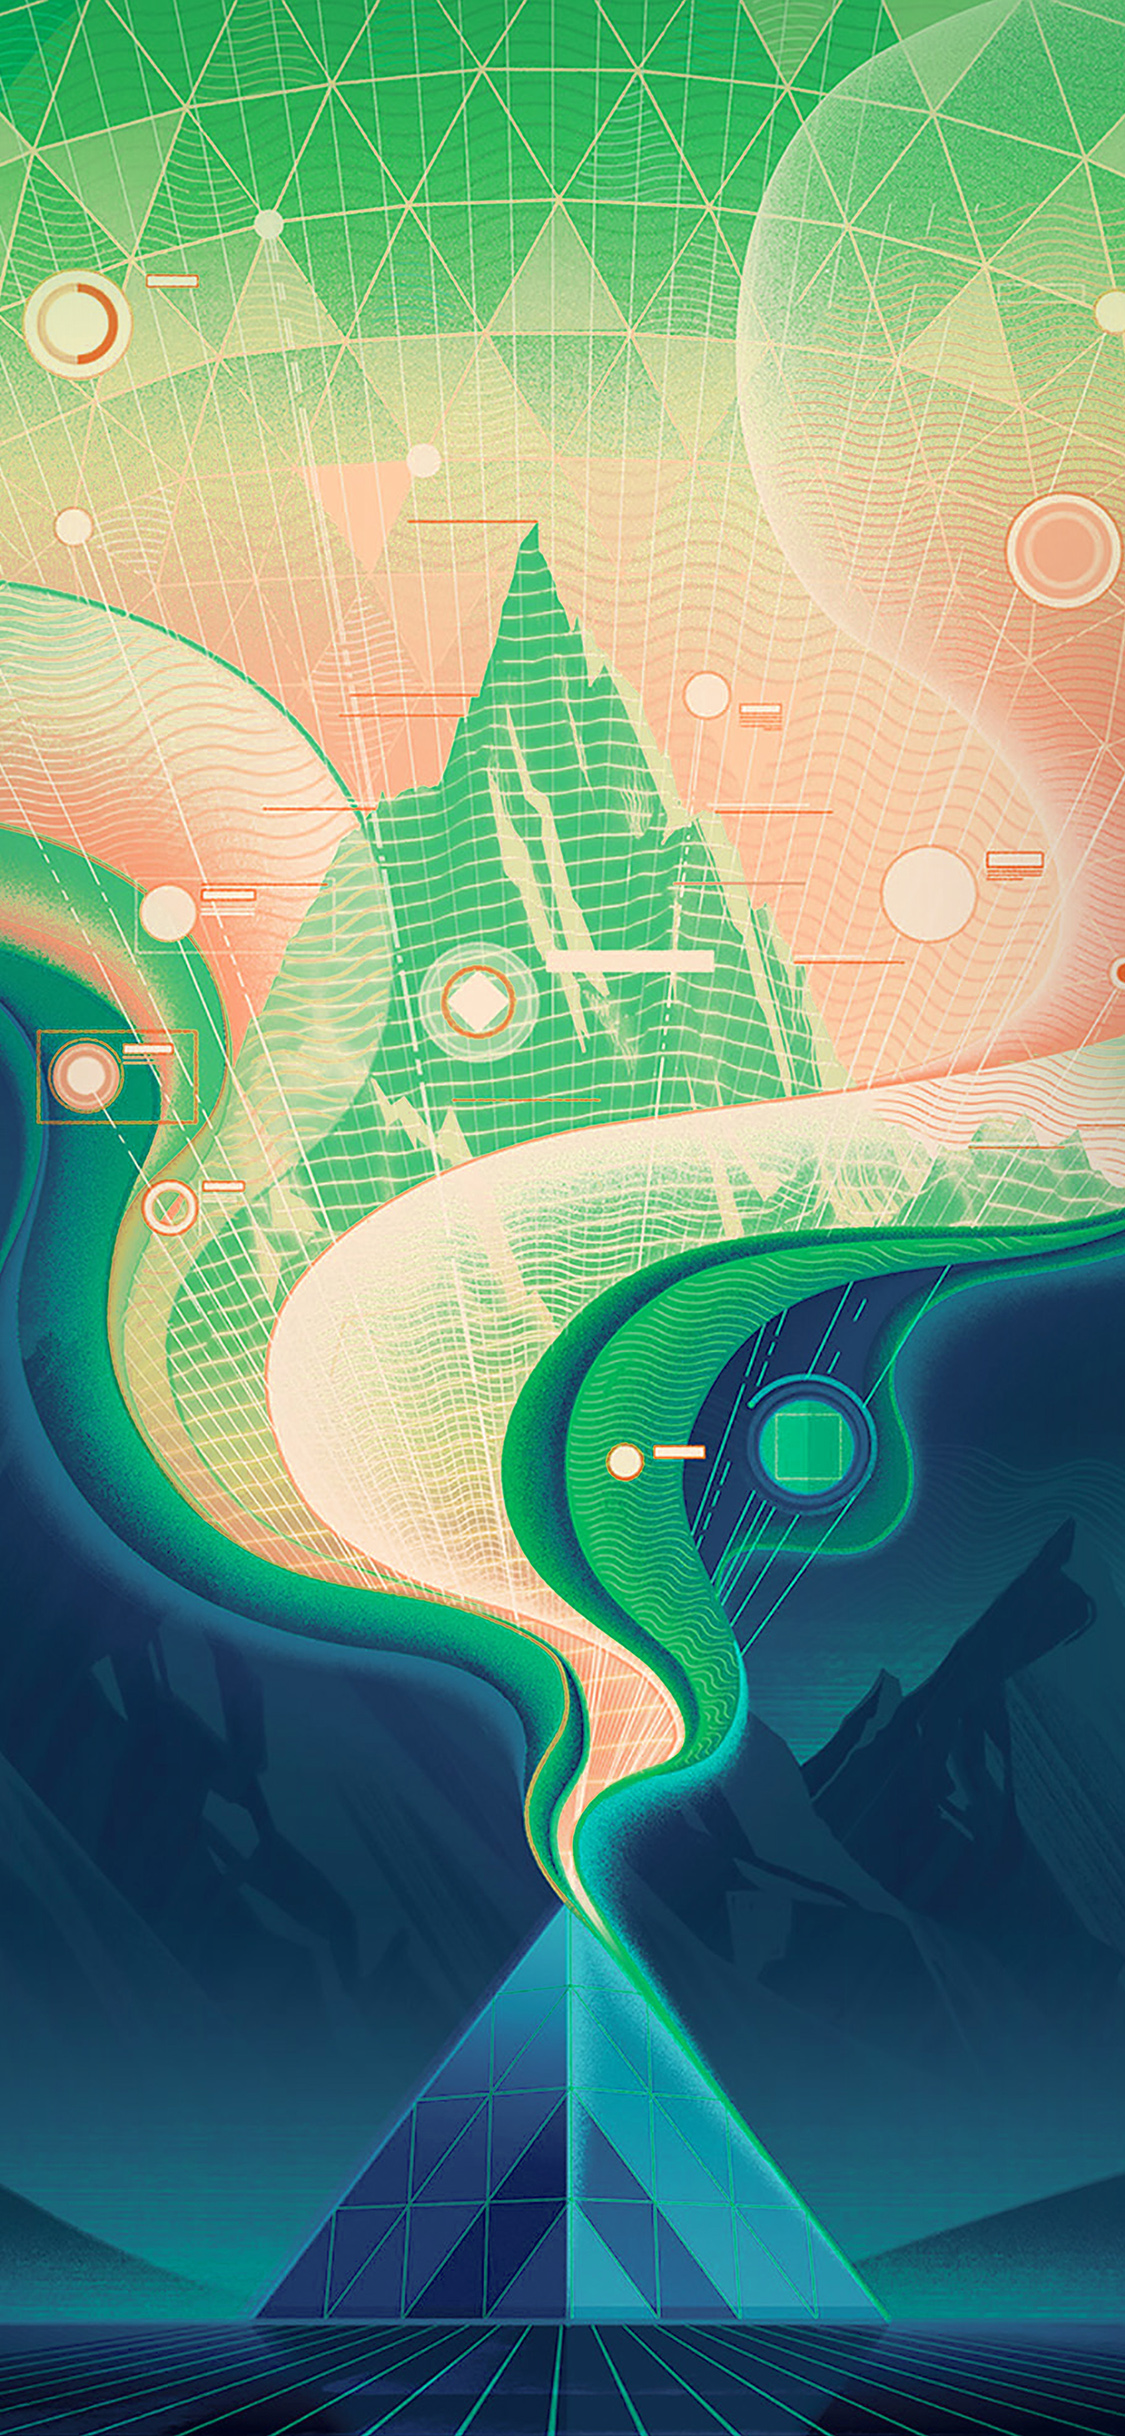 iPhonexpapers.com-Apple-iPhone-wallpaper-ba17-digital-abstract-road-blue-illustration-art-green